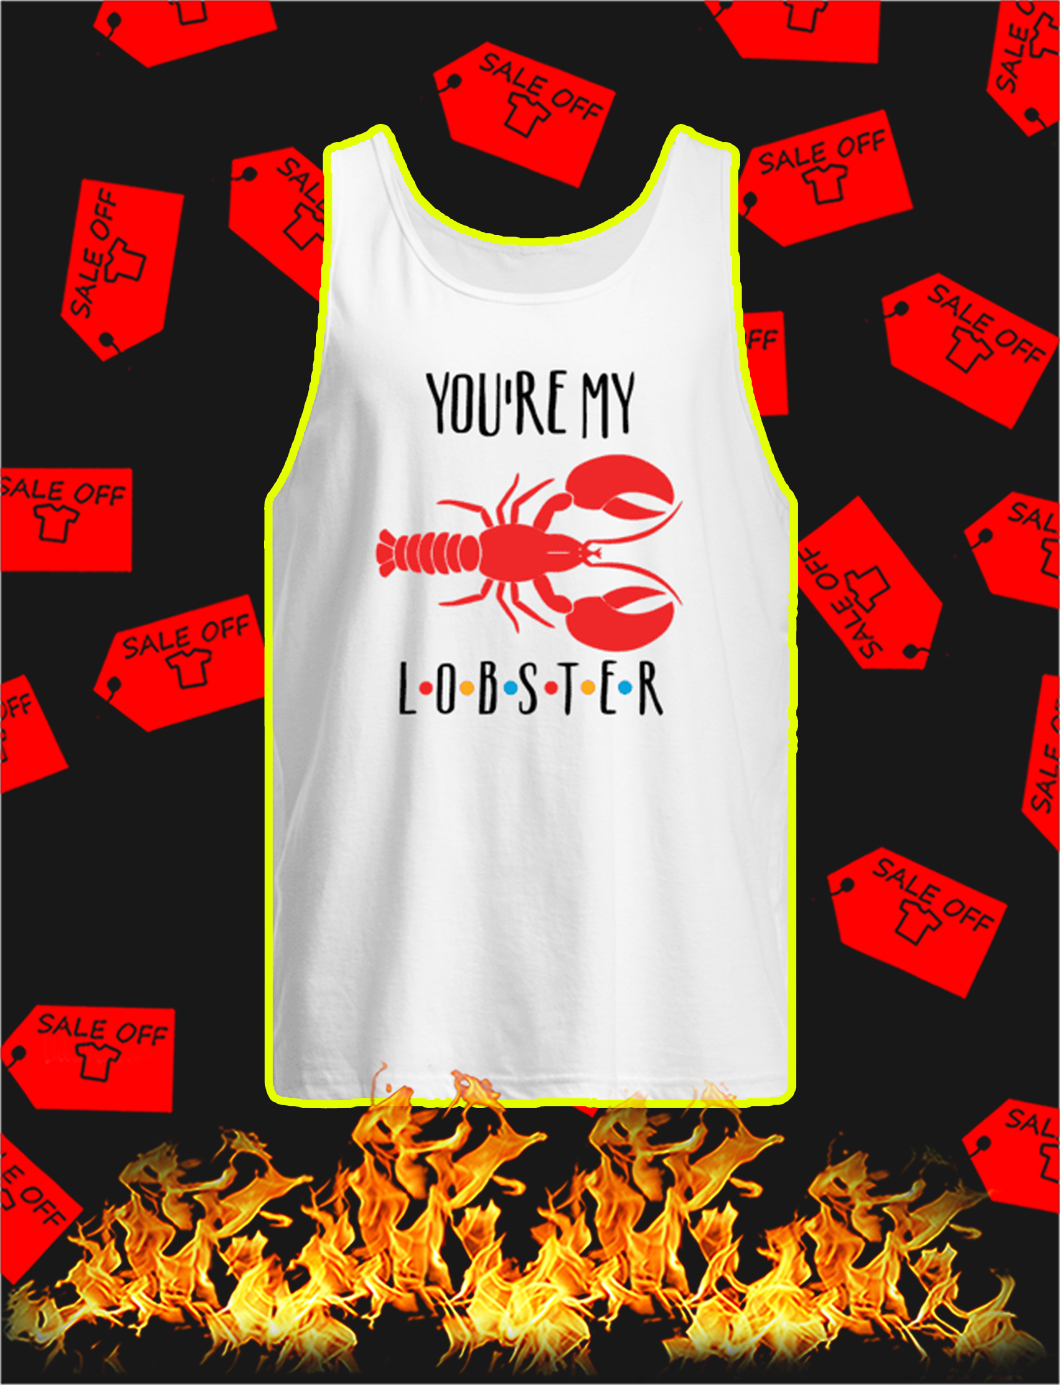 You're My Lobster tank top